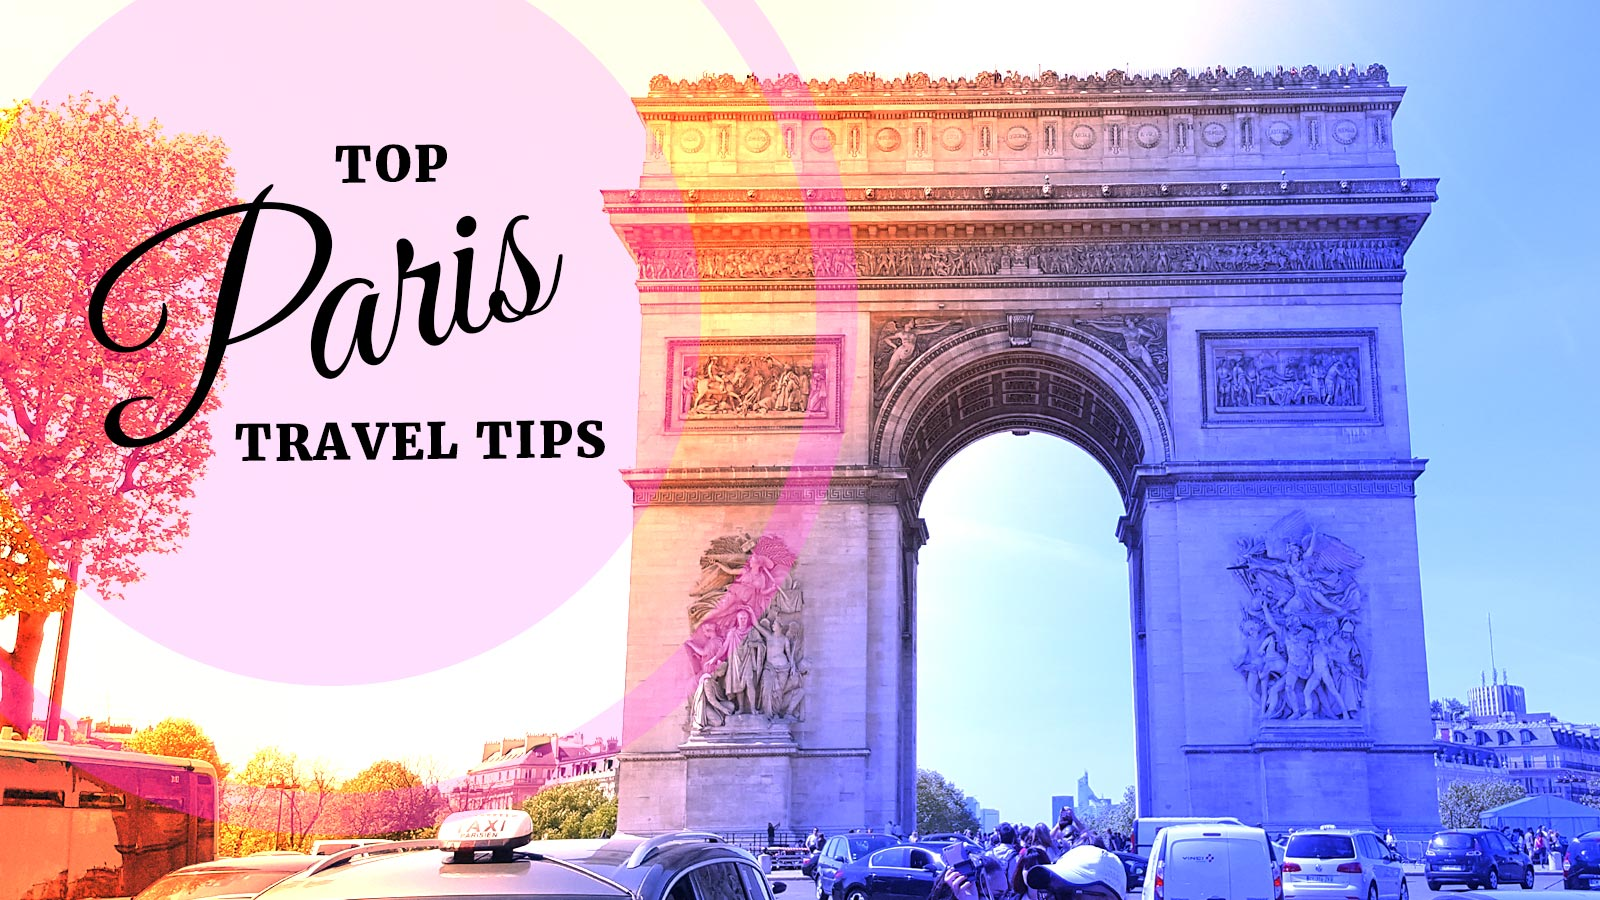 Paris Travel Tips: Top things to know